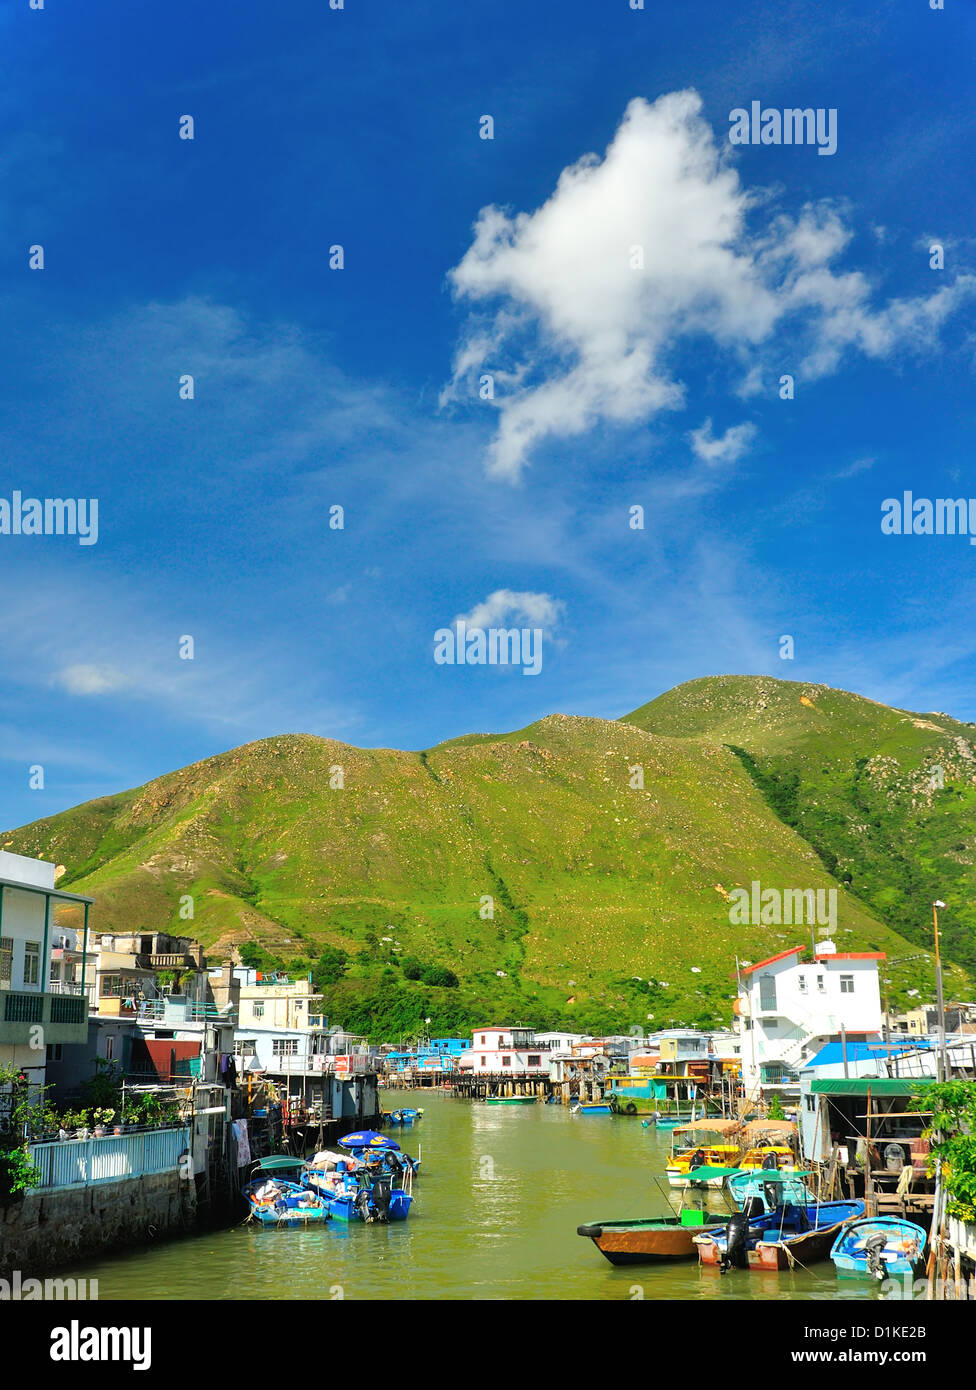 Tai O, an fishing village in Hong Kong. With green hill and blue sky - Stock Image